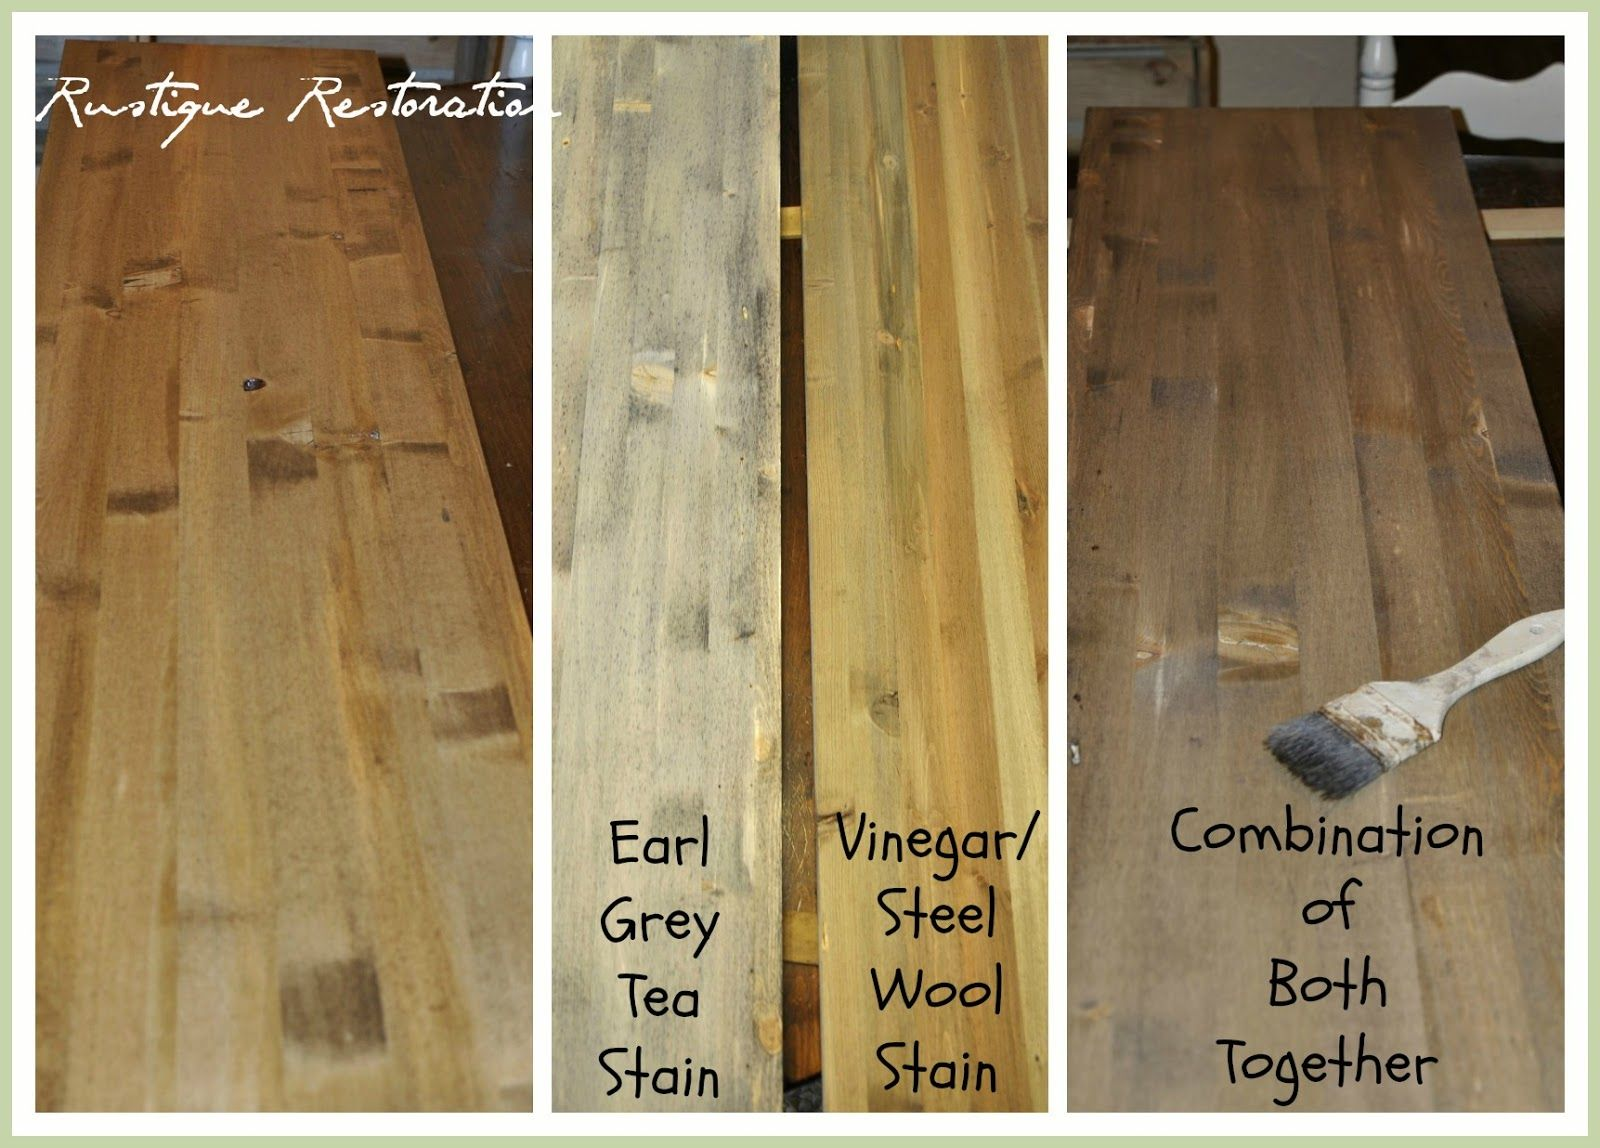 Rustique Restoration Diy Wood Stain Staining Wood Diy Staining